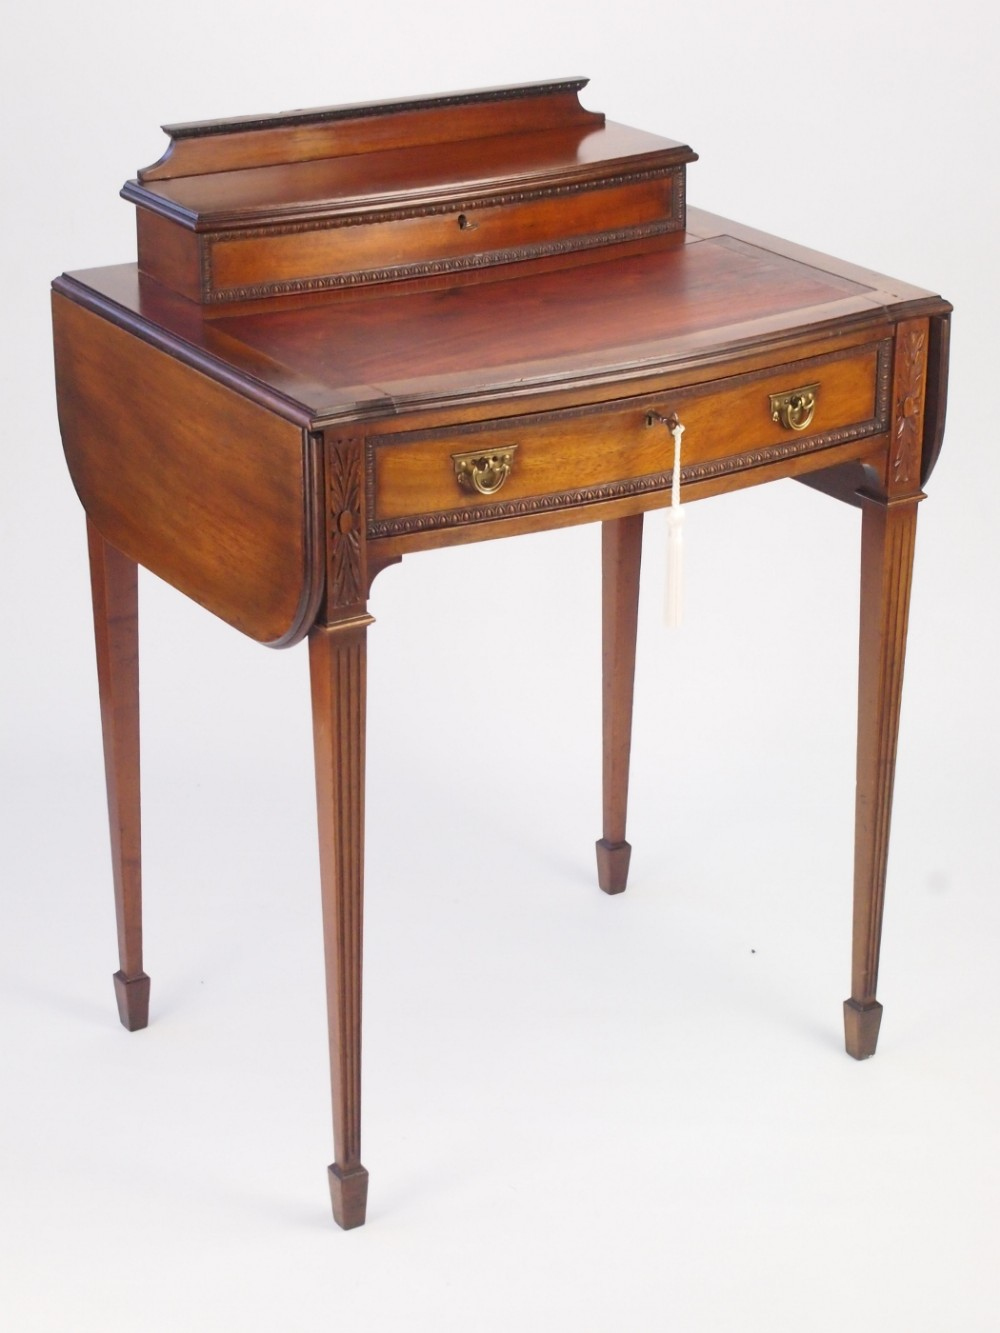 small antique mahogany ladys writing desk davenport - Small Antique Mahogany Ladys Writing Desk / Davenport 307277